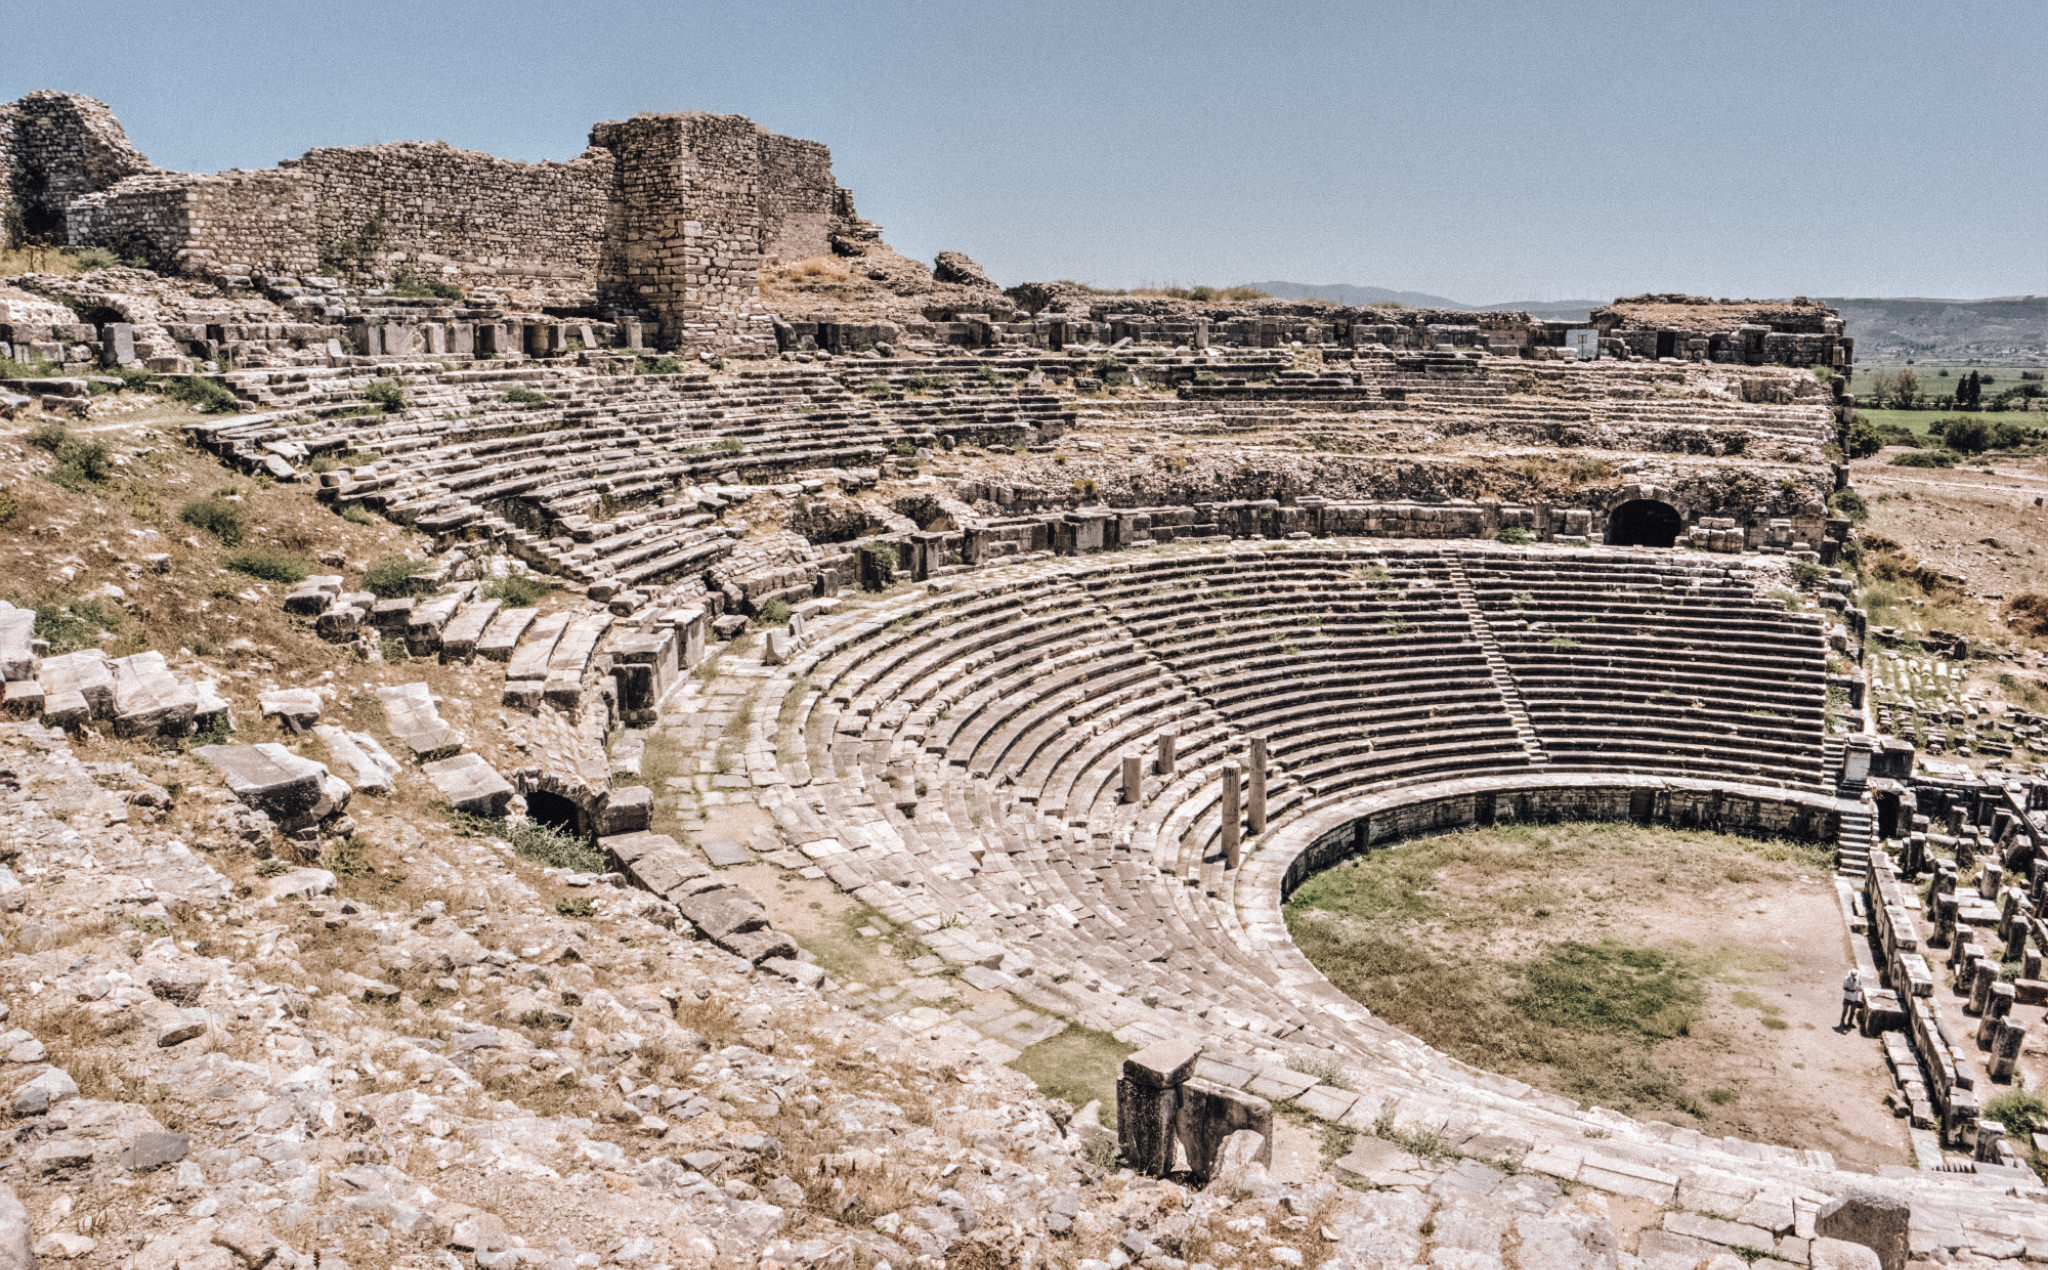 The ruins of a theatre in Miletus, an Ancient Greek city now in Aydın Province, Turkey, which is seen as the birthplace of the grid street plan.